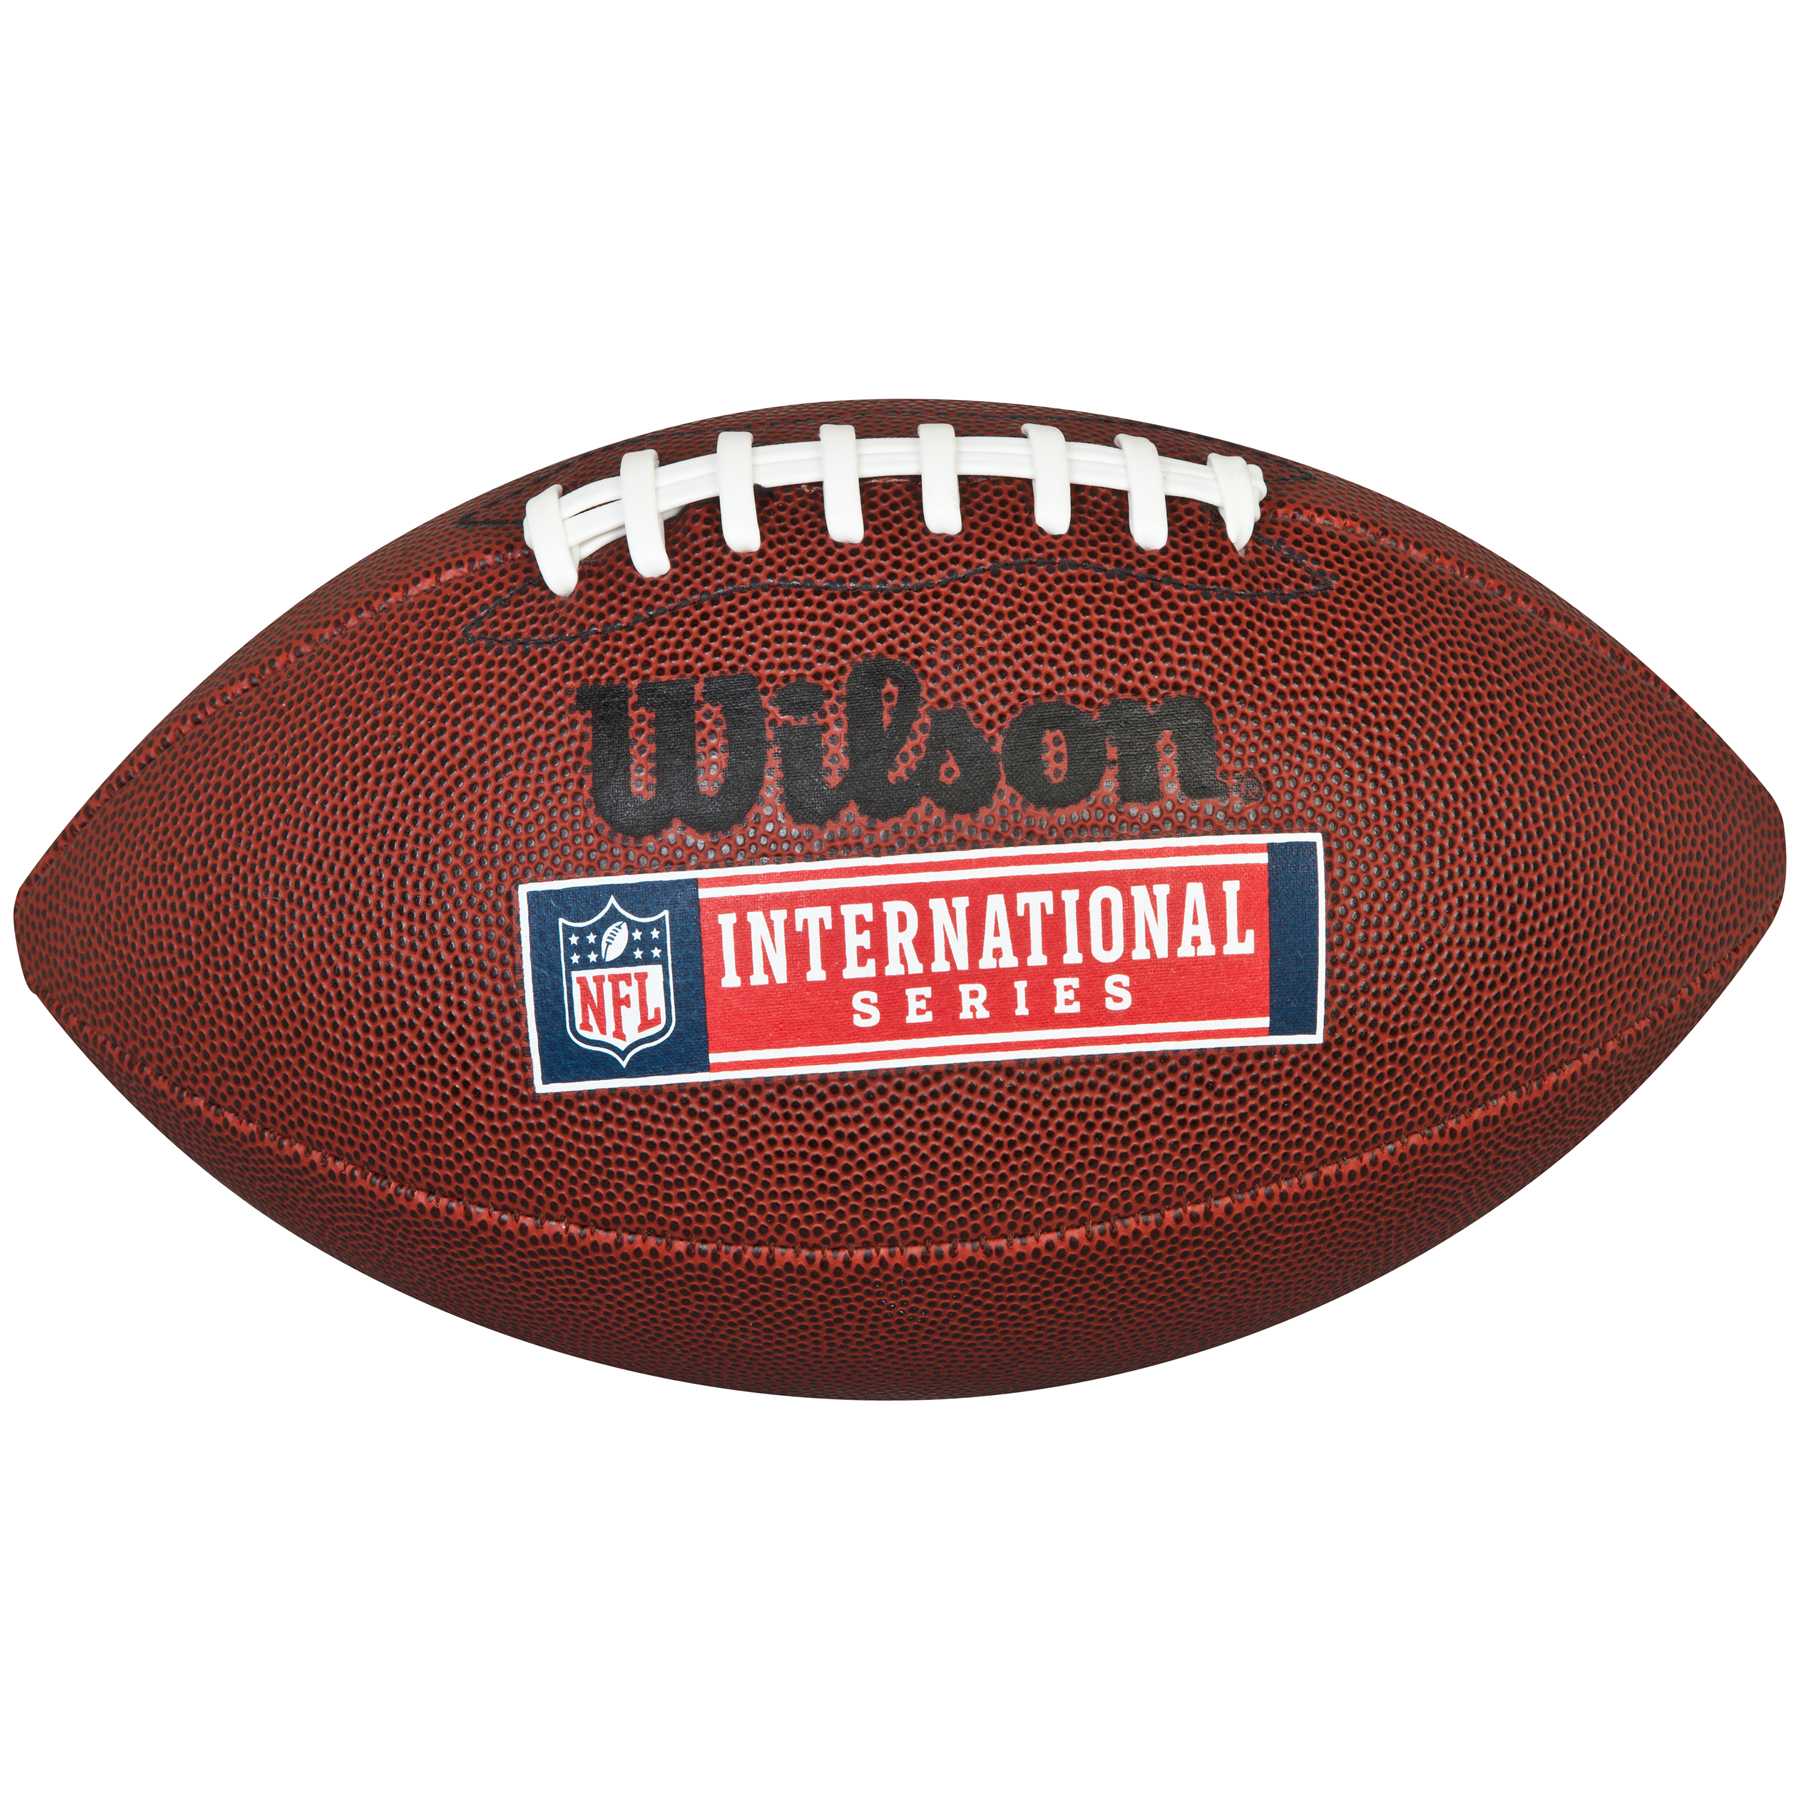 NFL Extreme International Series Football